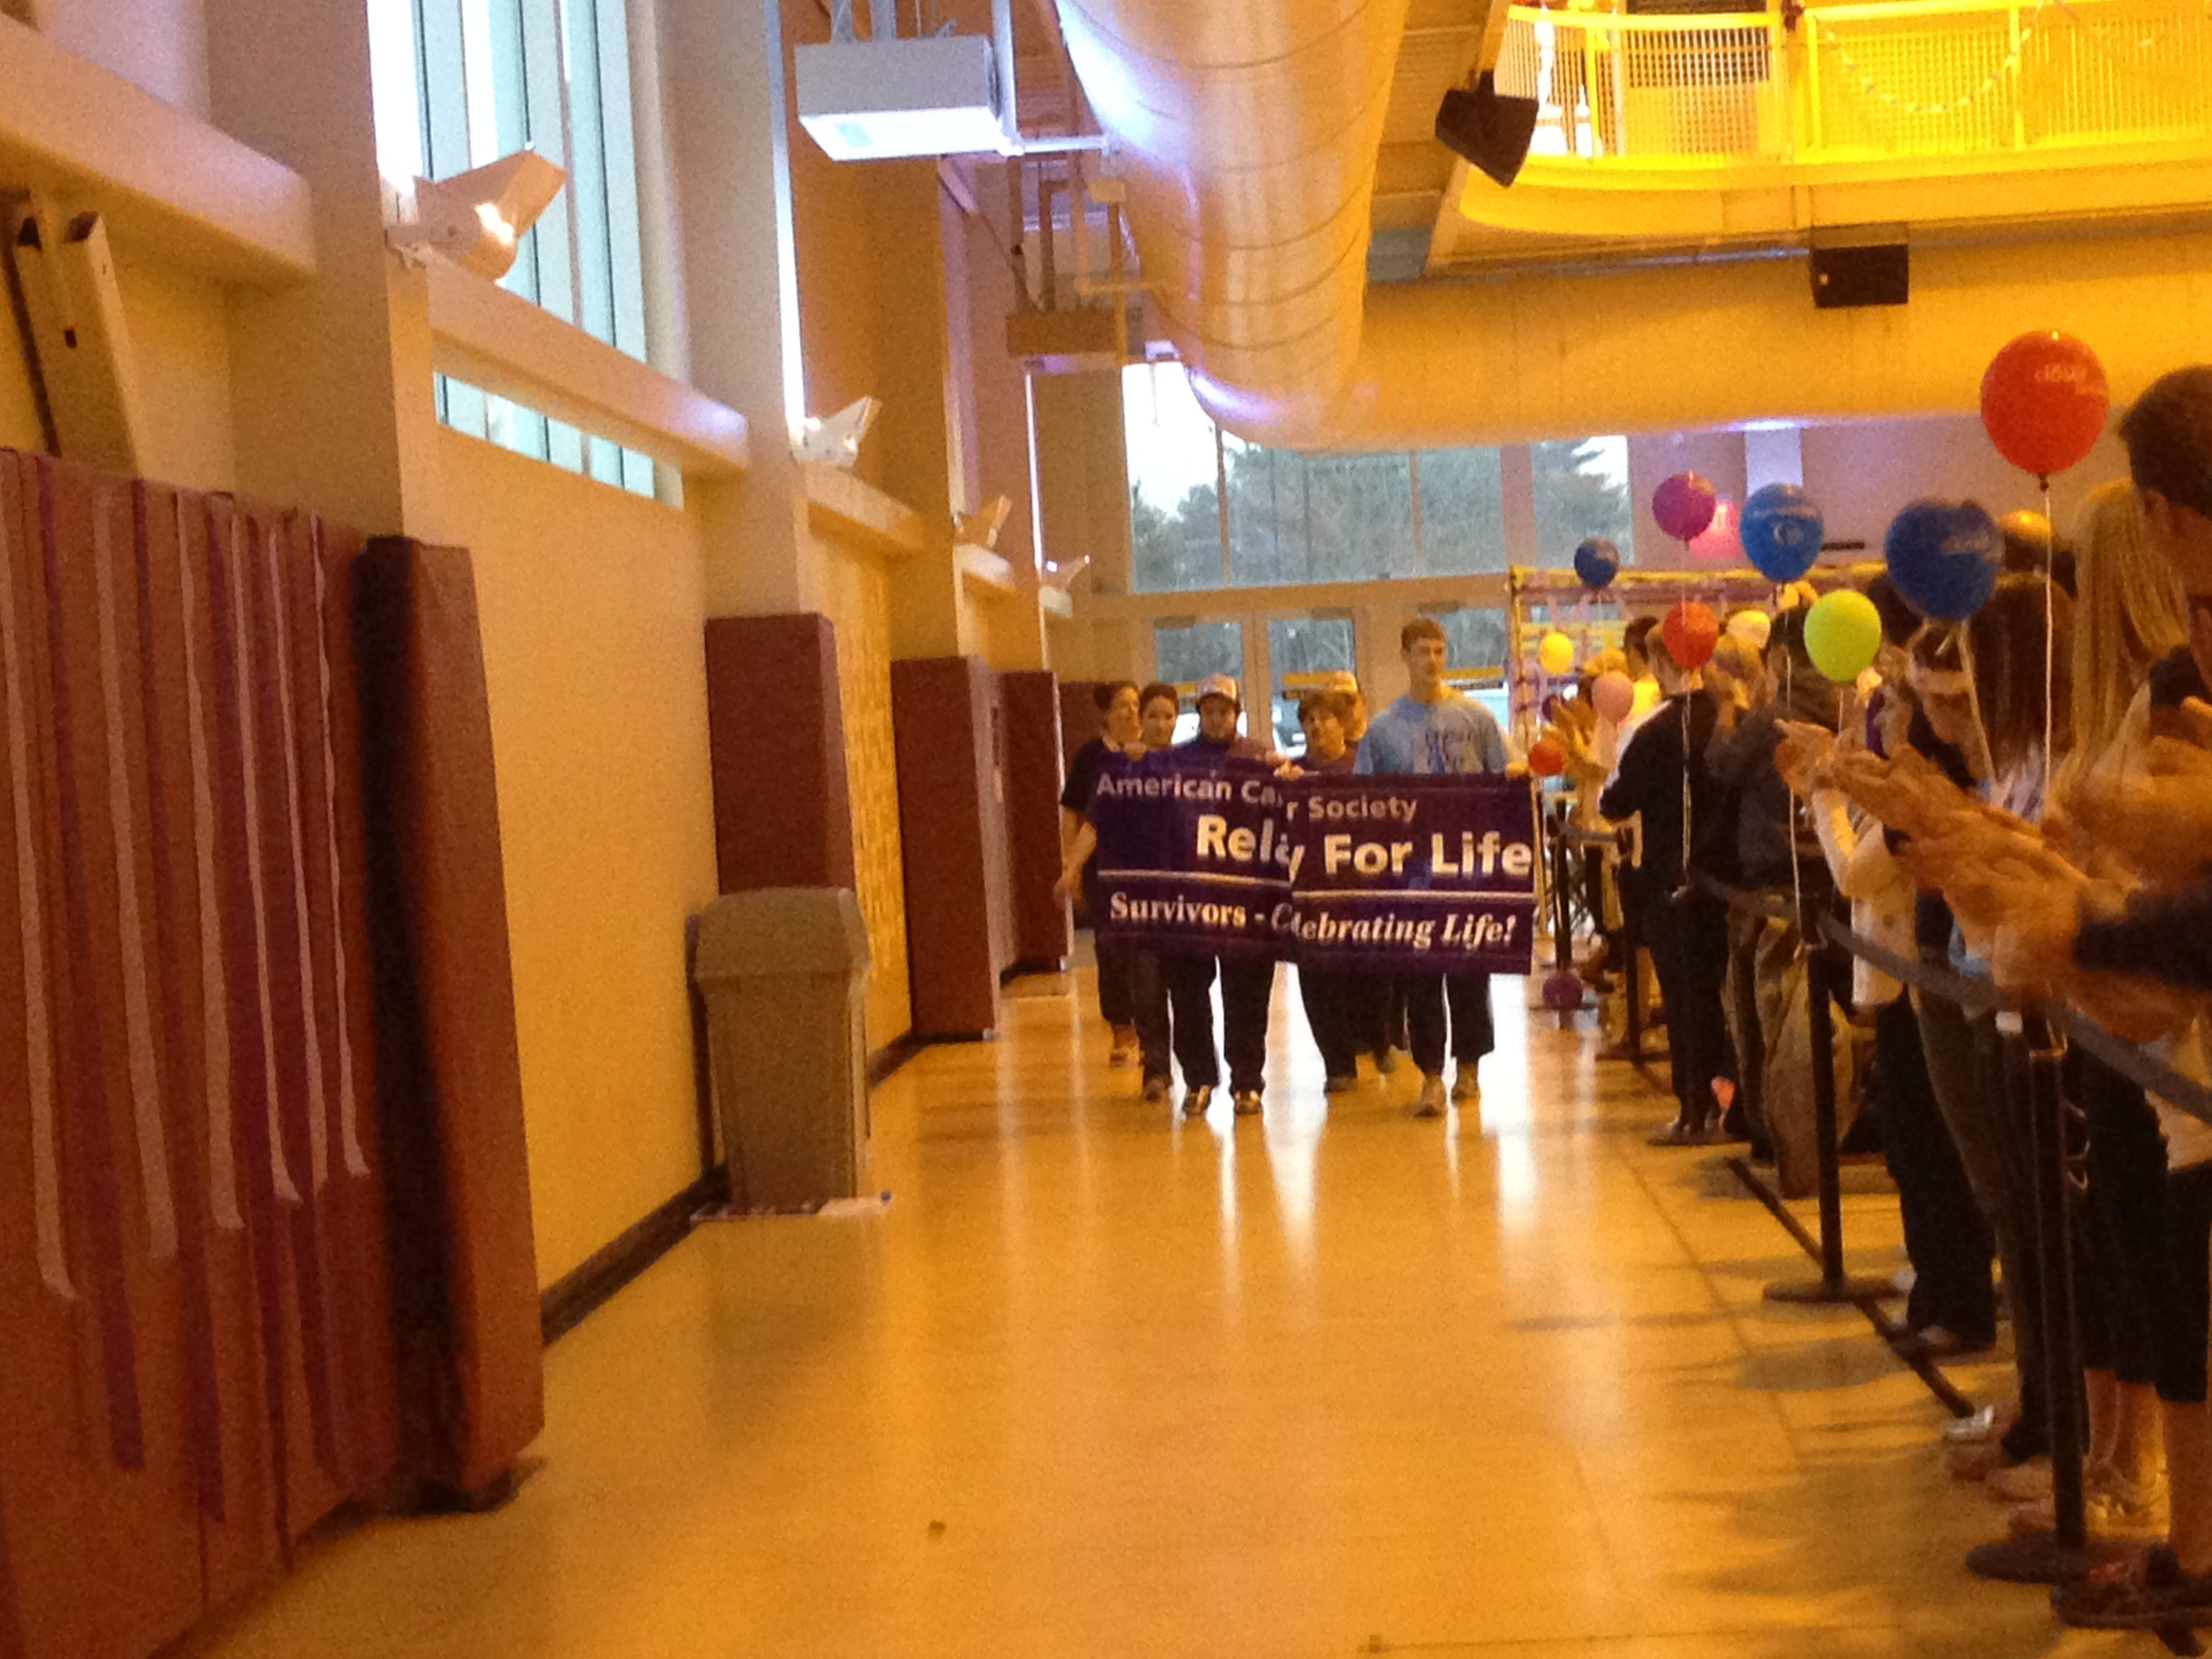 Survivors from the Merrimack community walked the first lap to start Relay For Life.